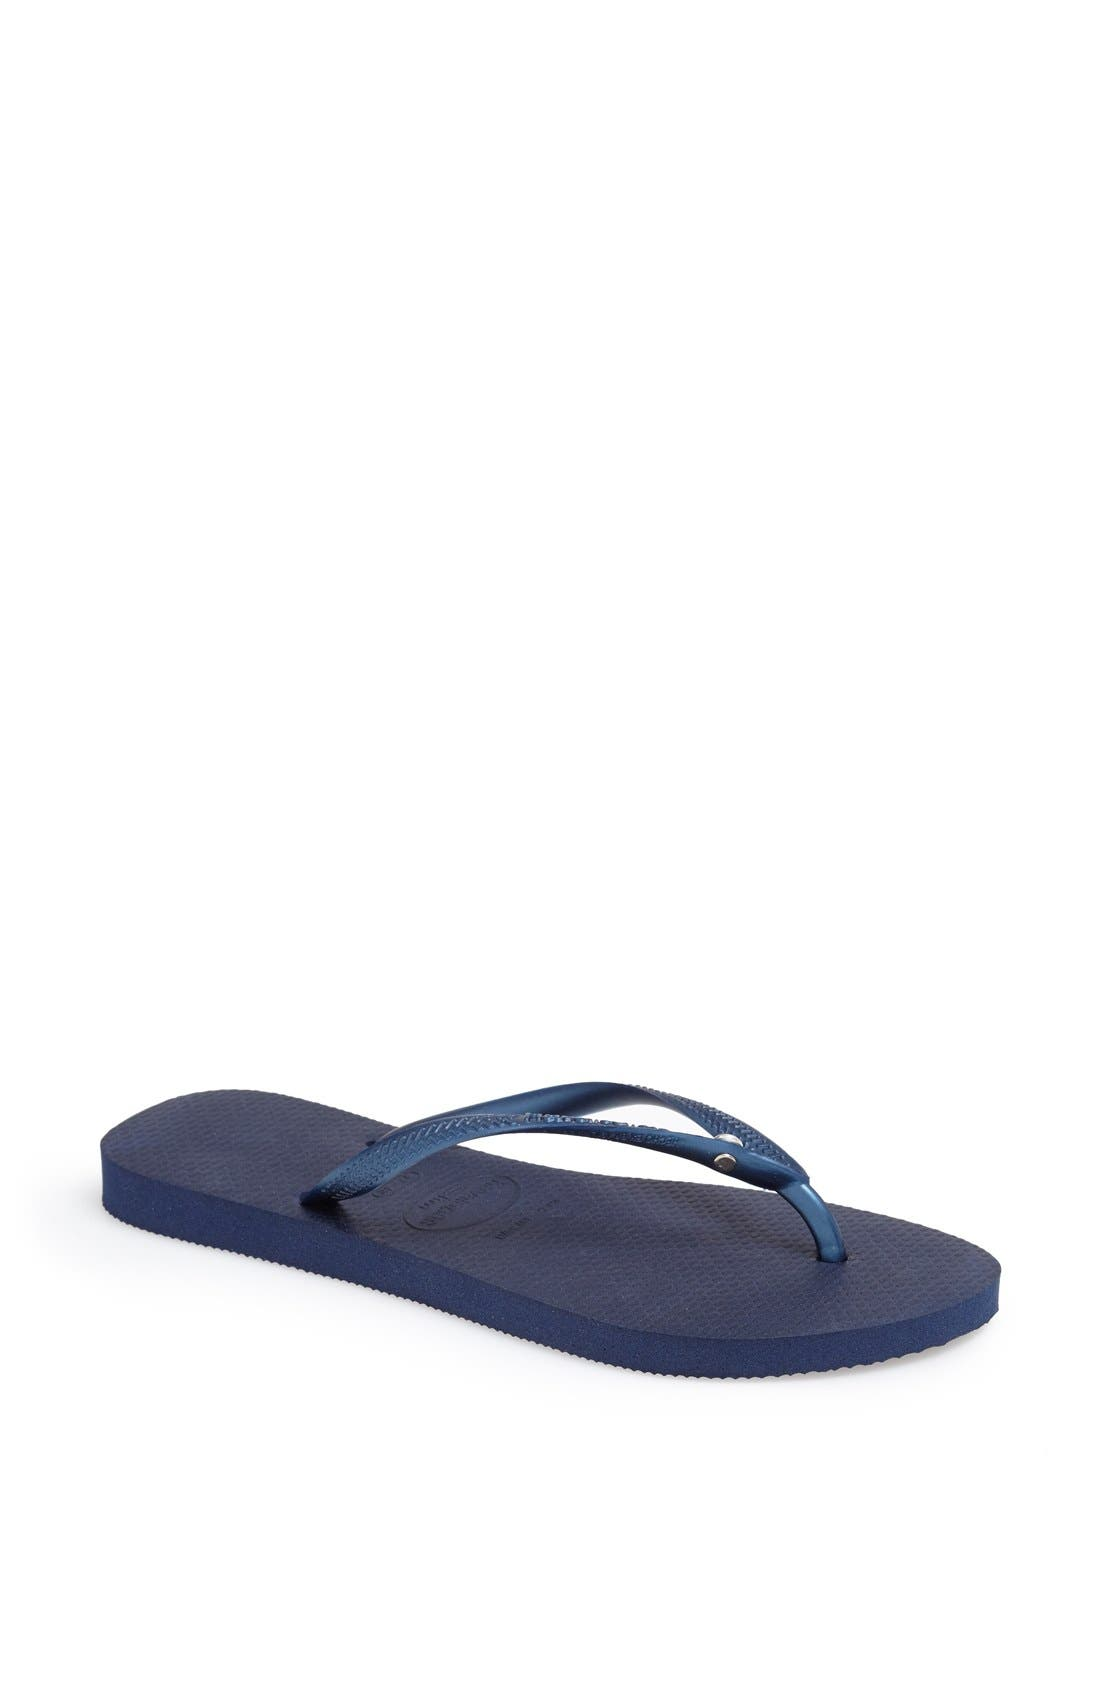 'Slim Crystal Glamour' Flip Flop,                             Main thumbnail 1, color,                             Navy Blue